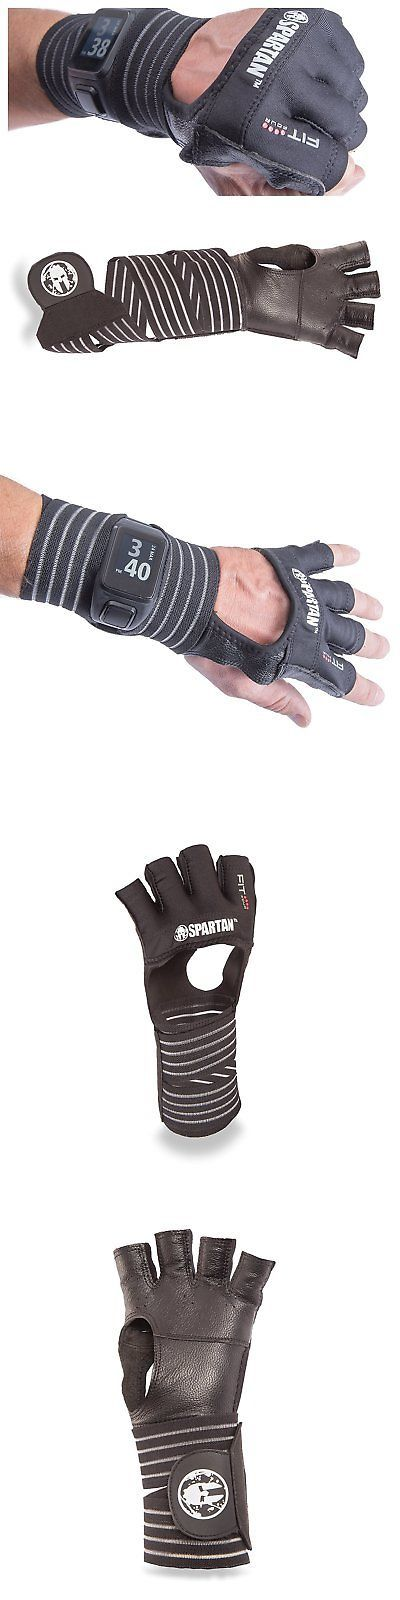 Other Fitness Clothing 158920: Spartan Race Ocr Slit Leather Gloves By Fit Four   Obstacle Course Racing And Mud -> BUY IT NOW ONLY: $59.54 on eBay!